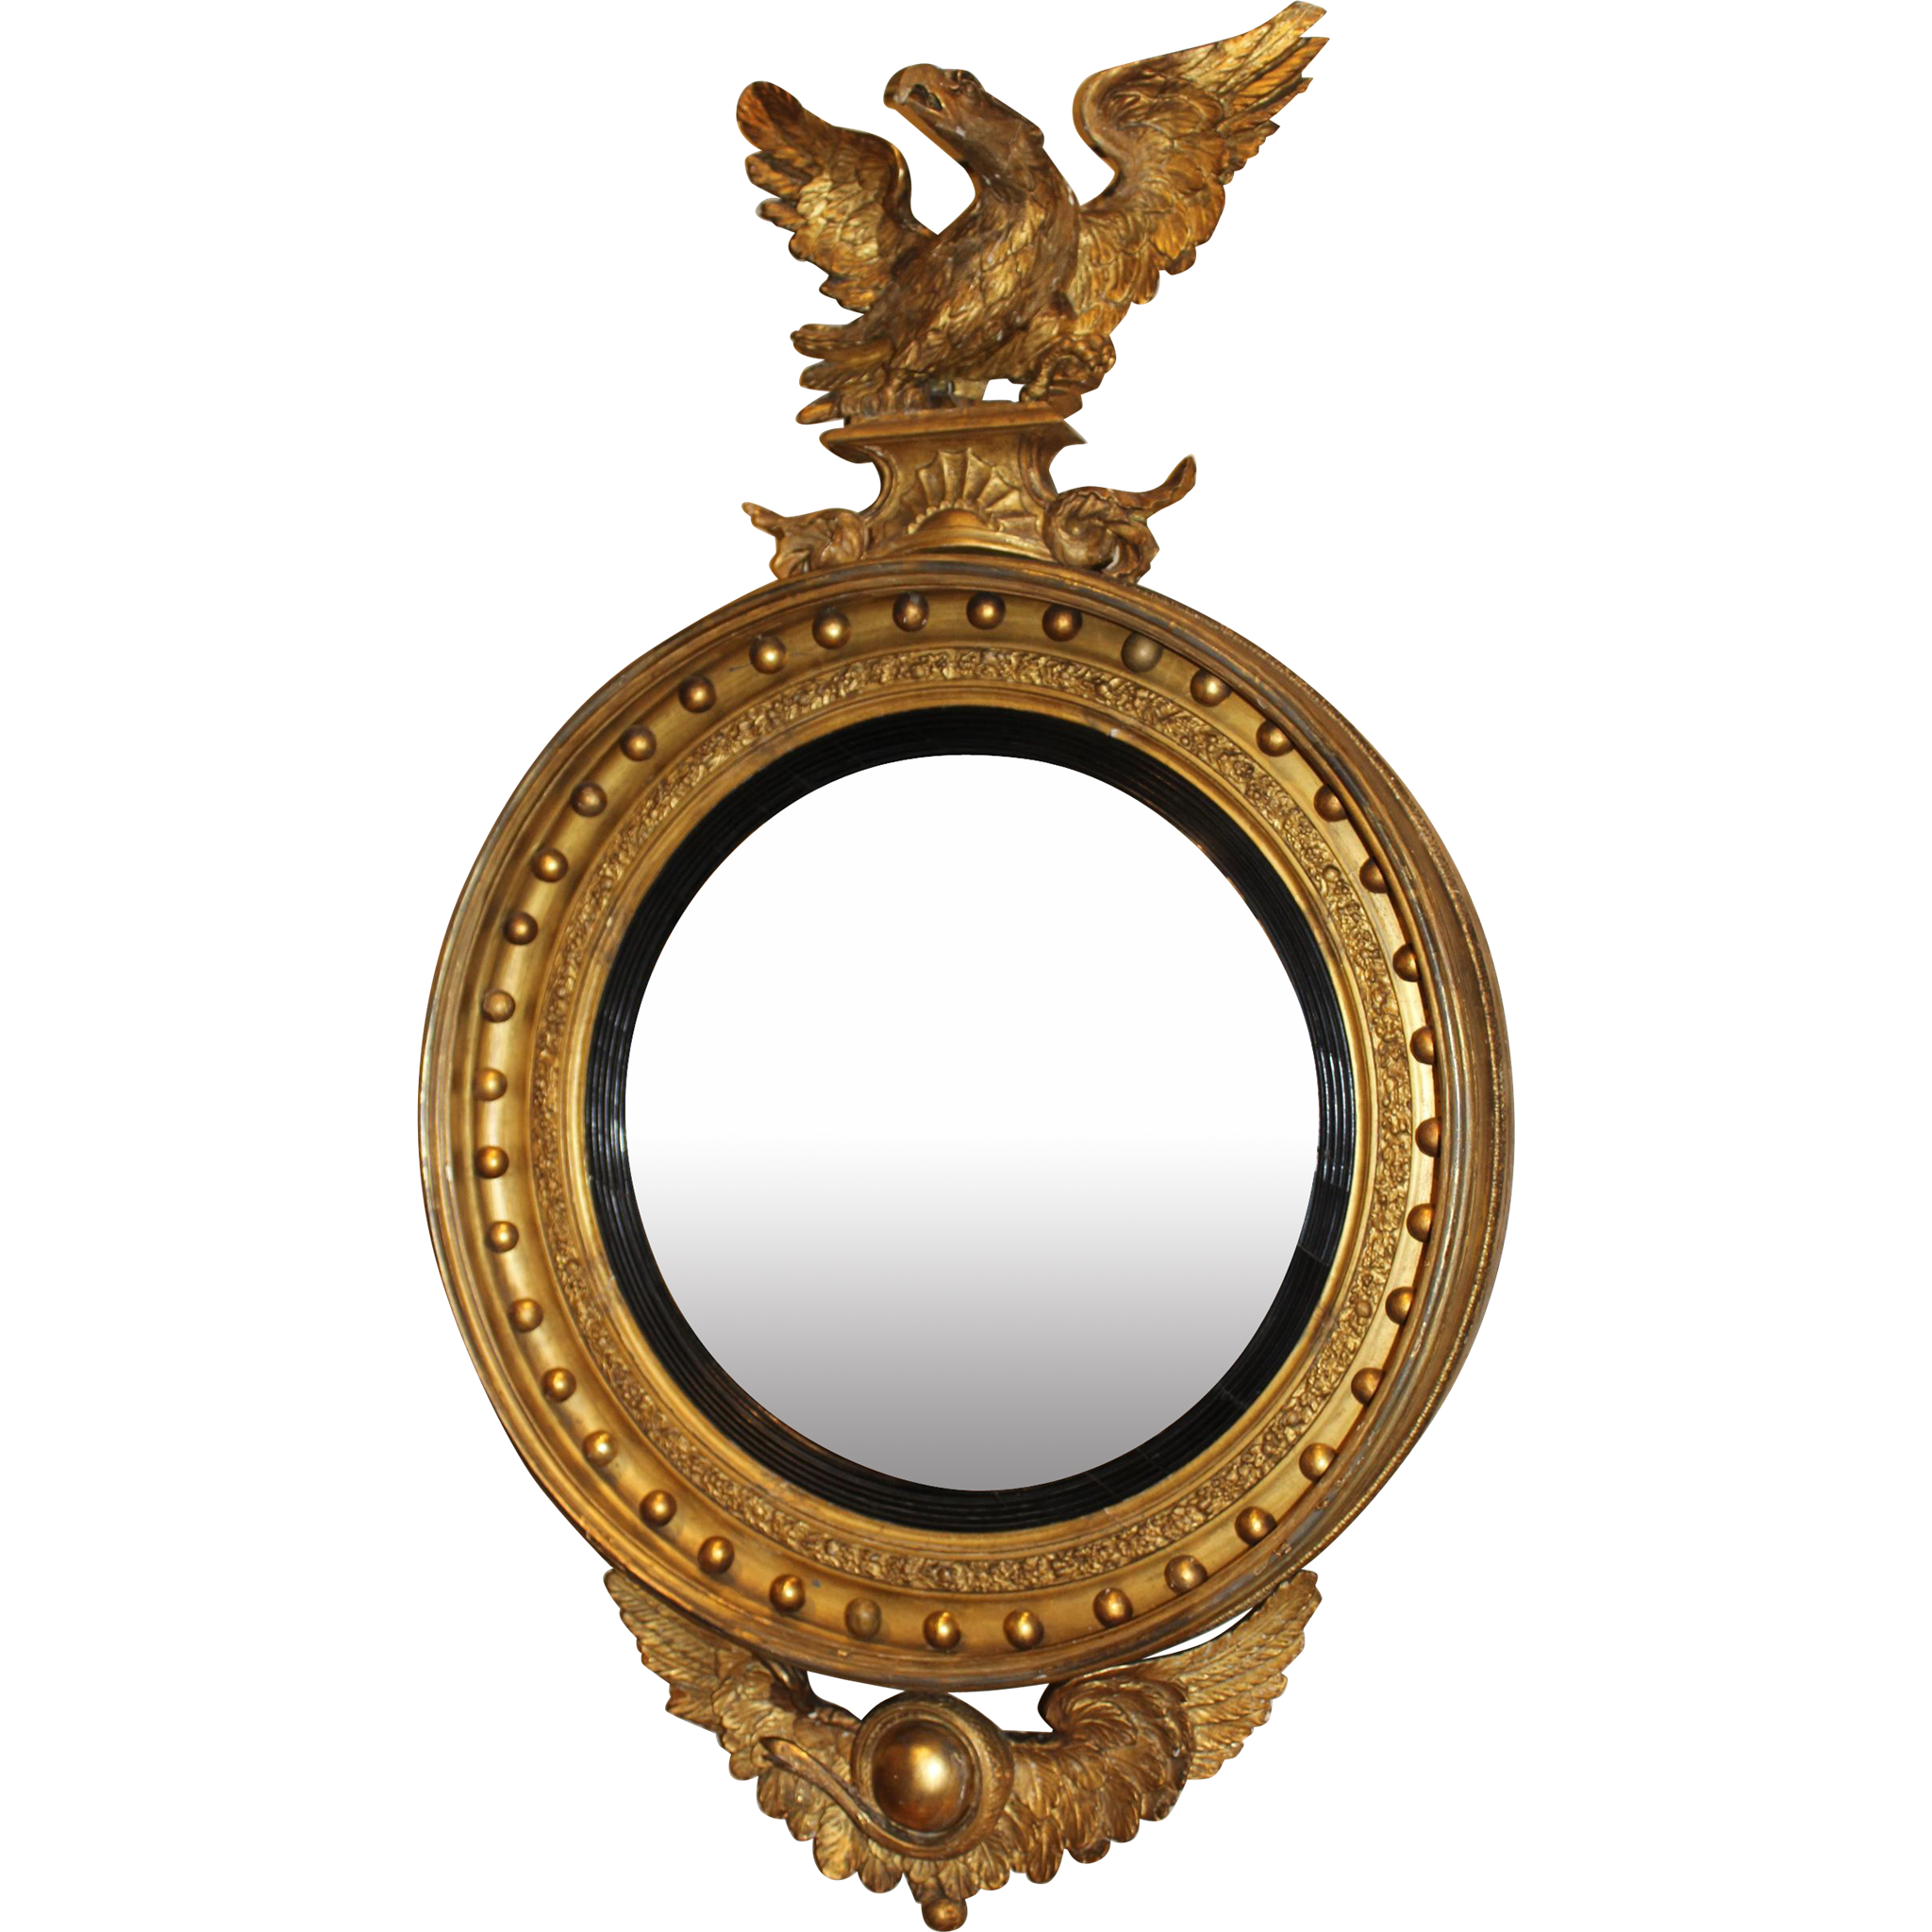 Exceptional Girandole Mirror with Rare Eagle & Serpent Motif